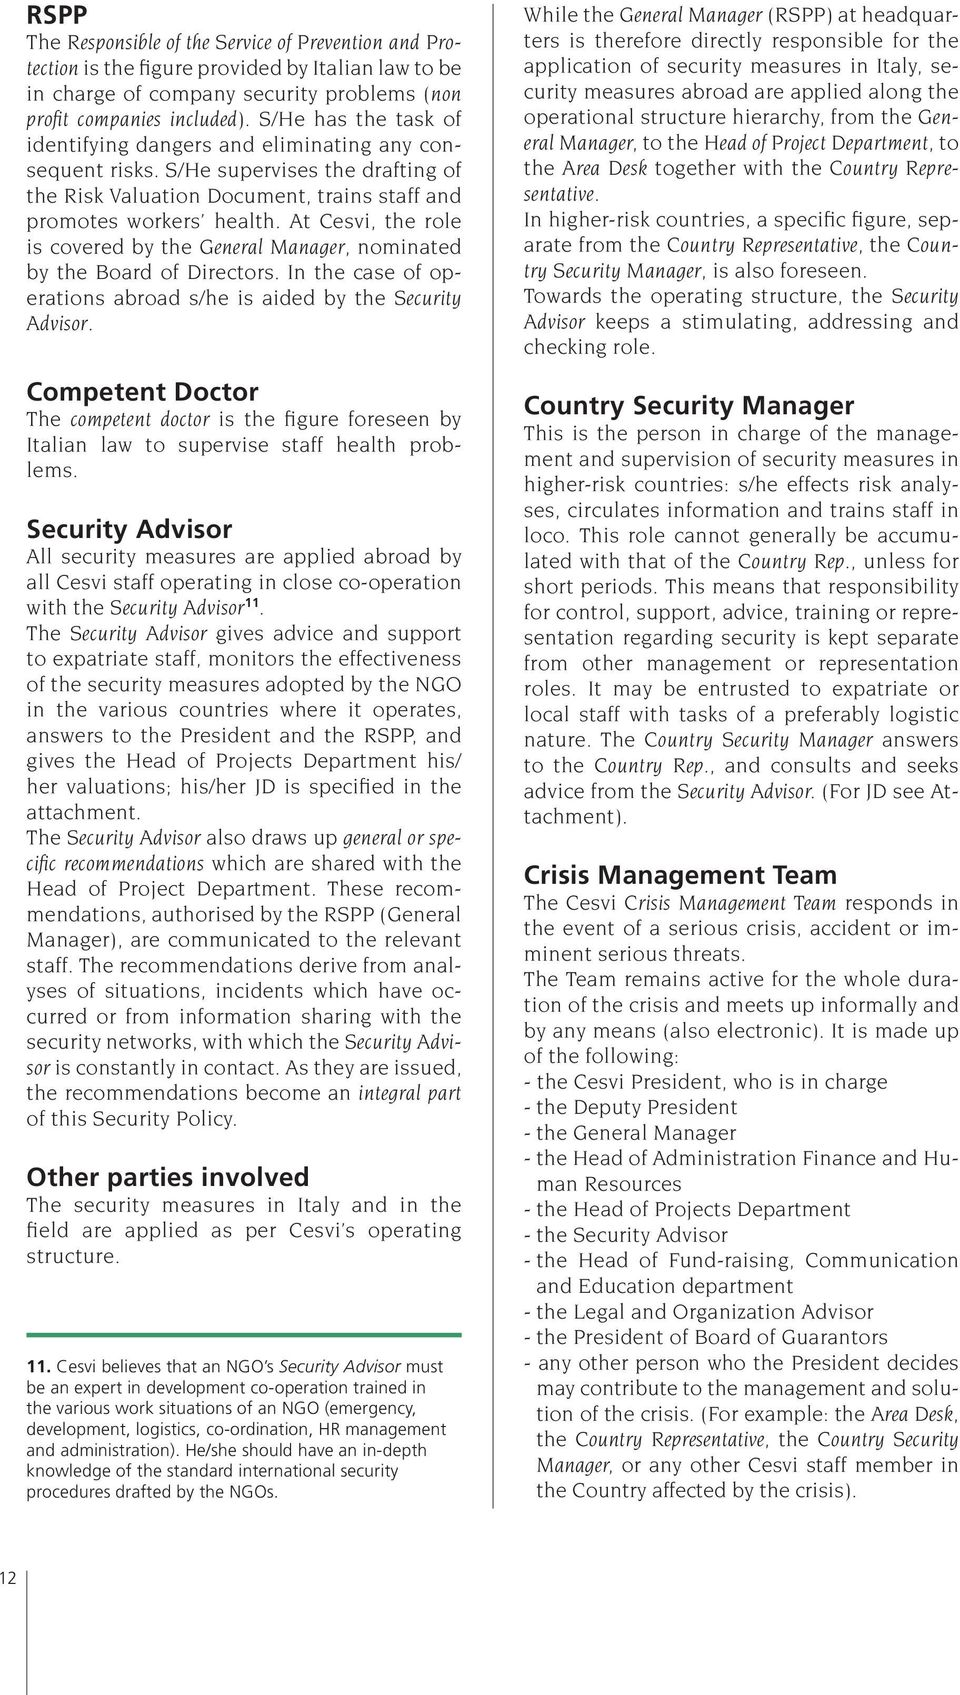 At Cesvi, the role is covered by the General Manager, nominated by the Board of Directors. In the case of operations abroad s/he is aided by the Security Advisor.